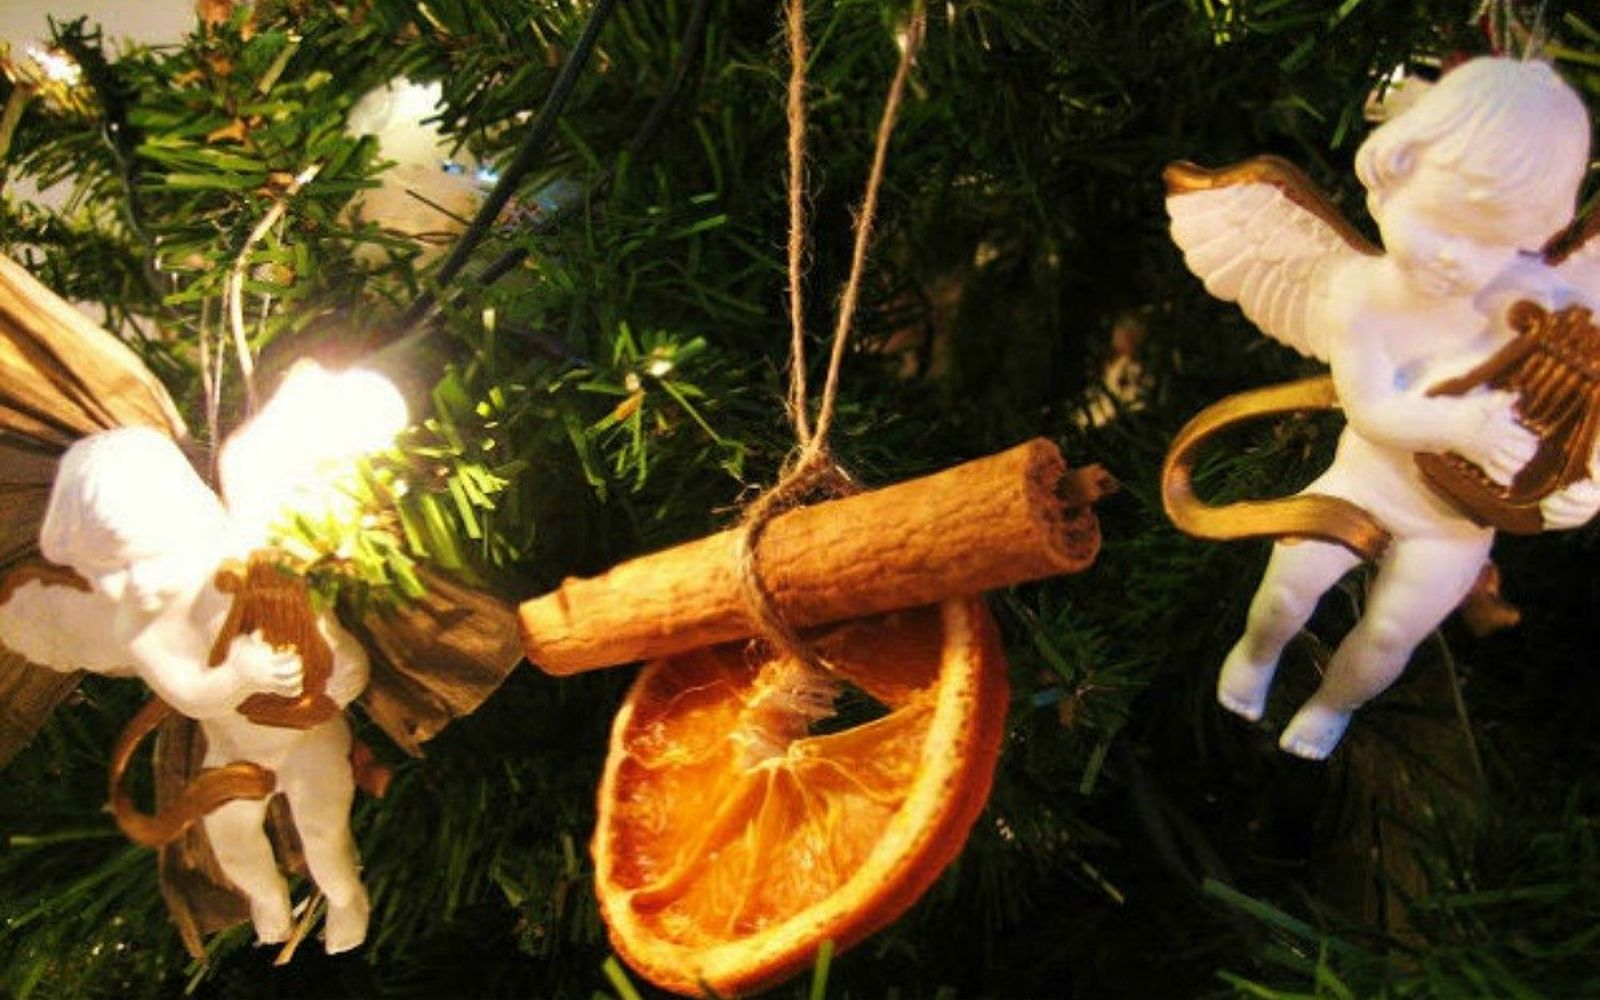 s make your home smell amazing with these diy winter scent ideas, home decor, These orange pomanders that hang on your tree